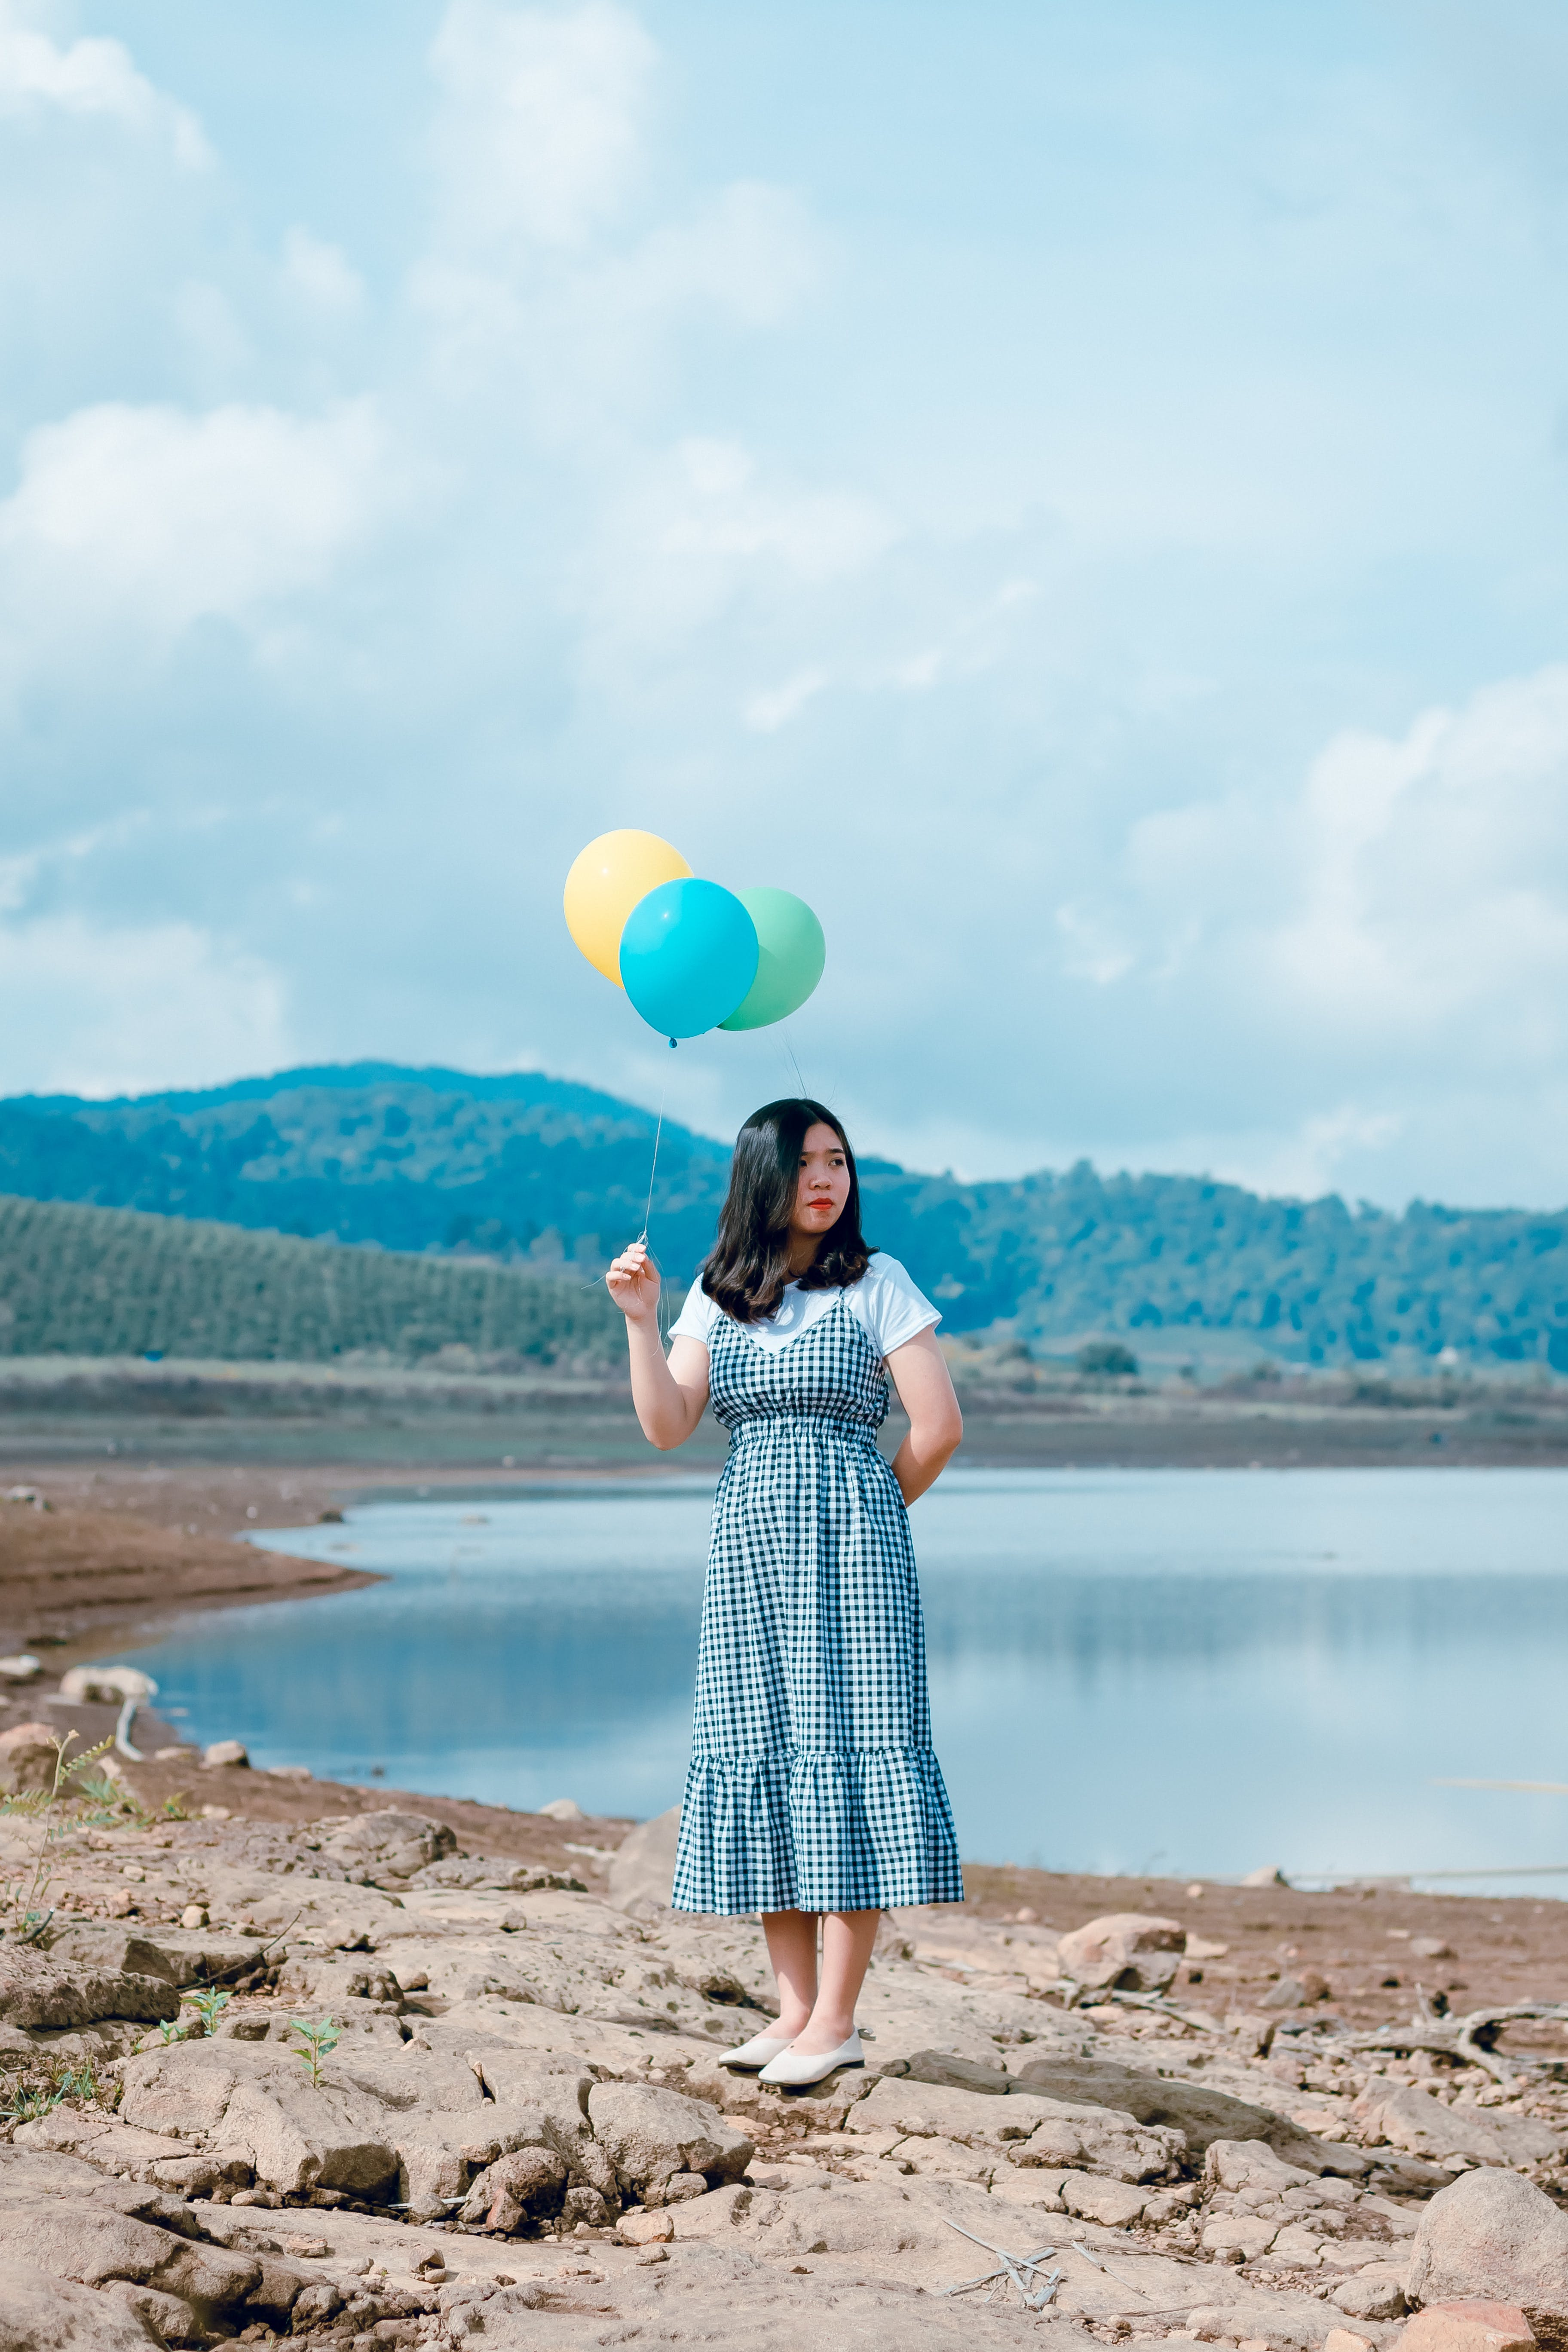 Woman Holding Balloons Near River